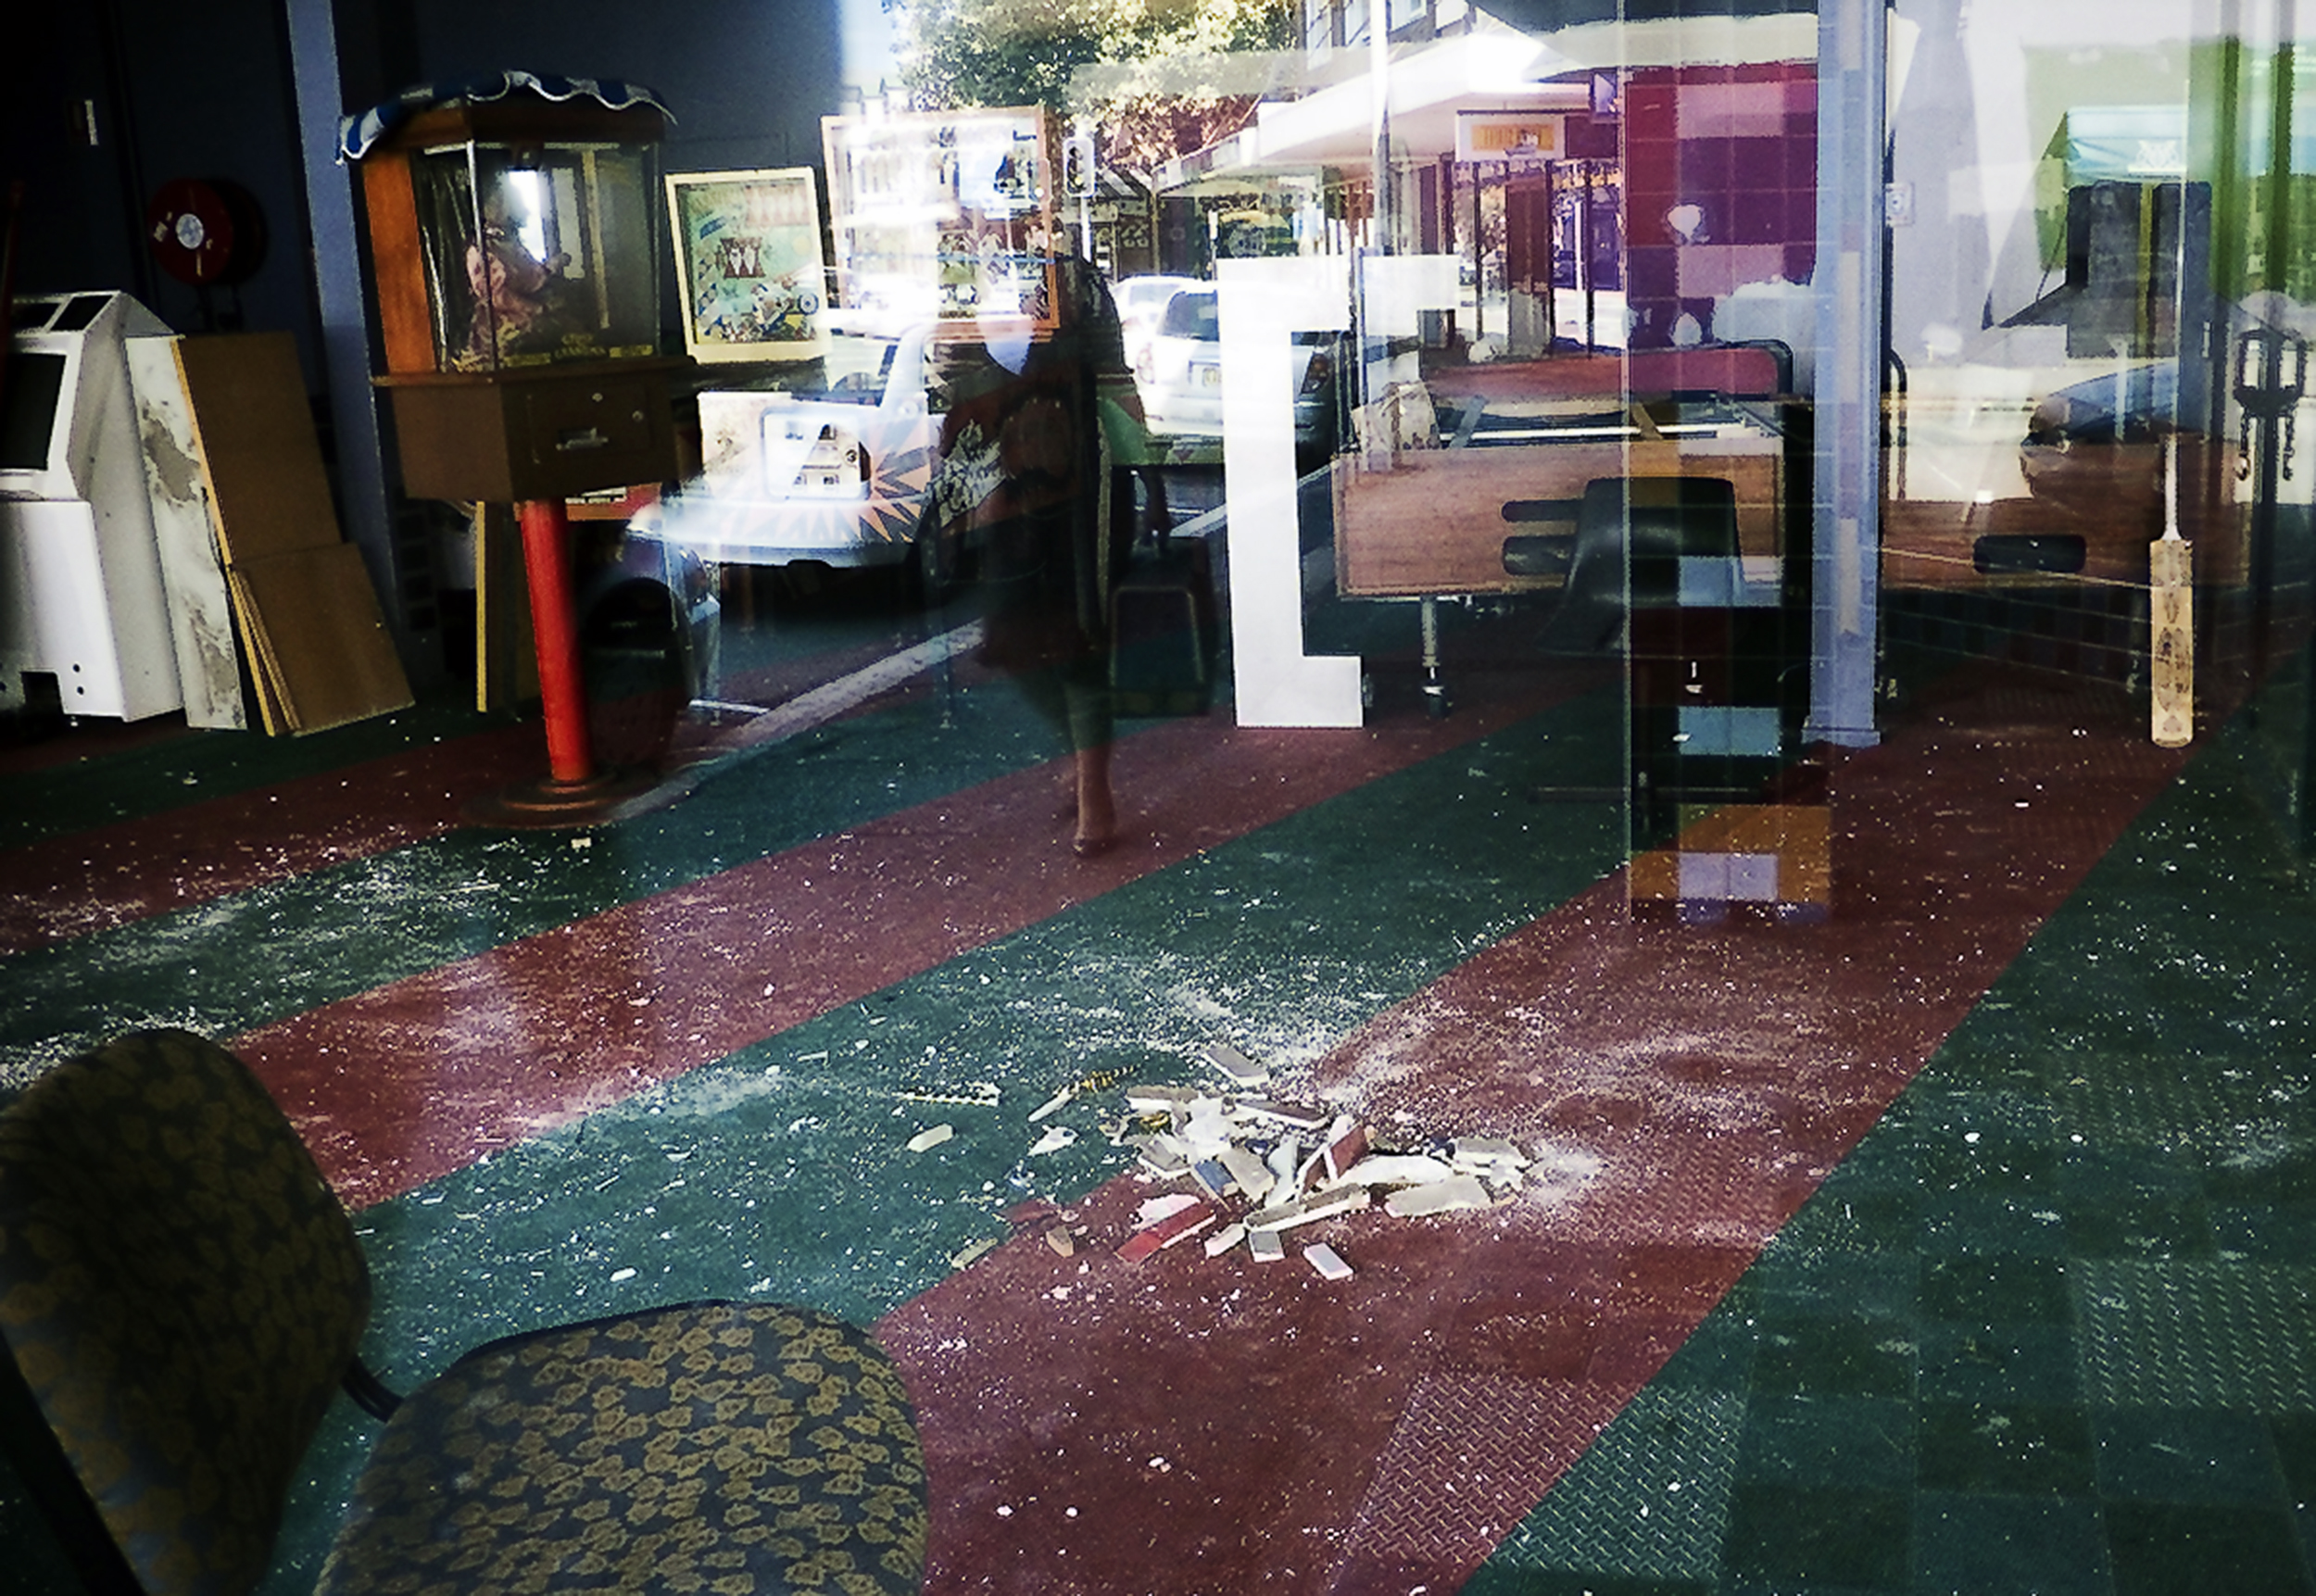 014_didi-s_gilson_street-photography_australian_newcastle_reflection_shopwindow_arcade_abandoned_colour_2007.jpg